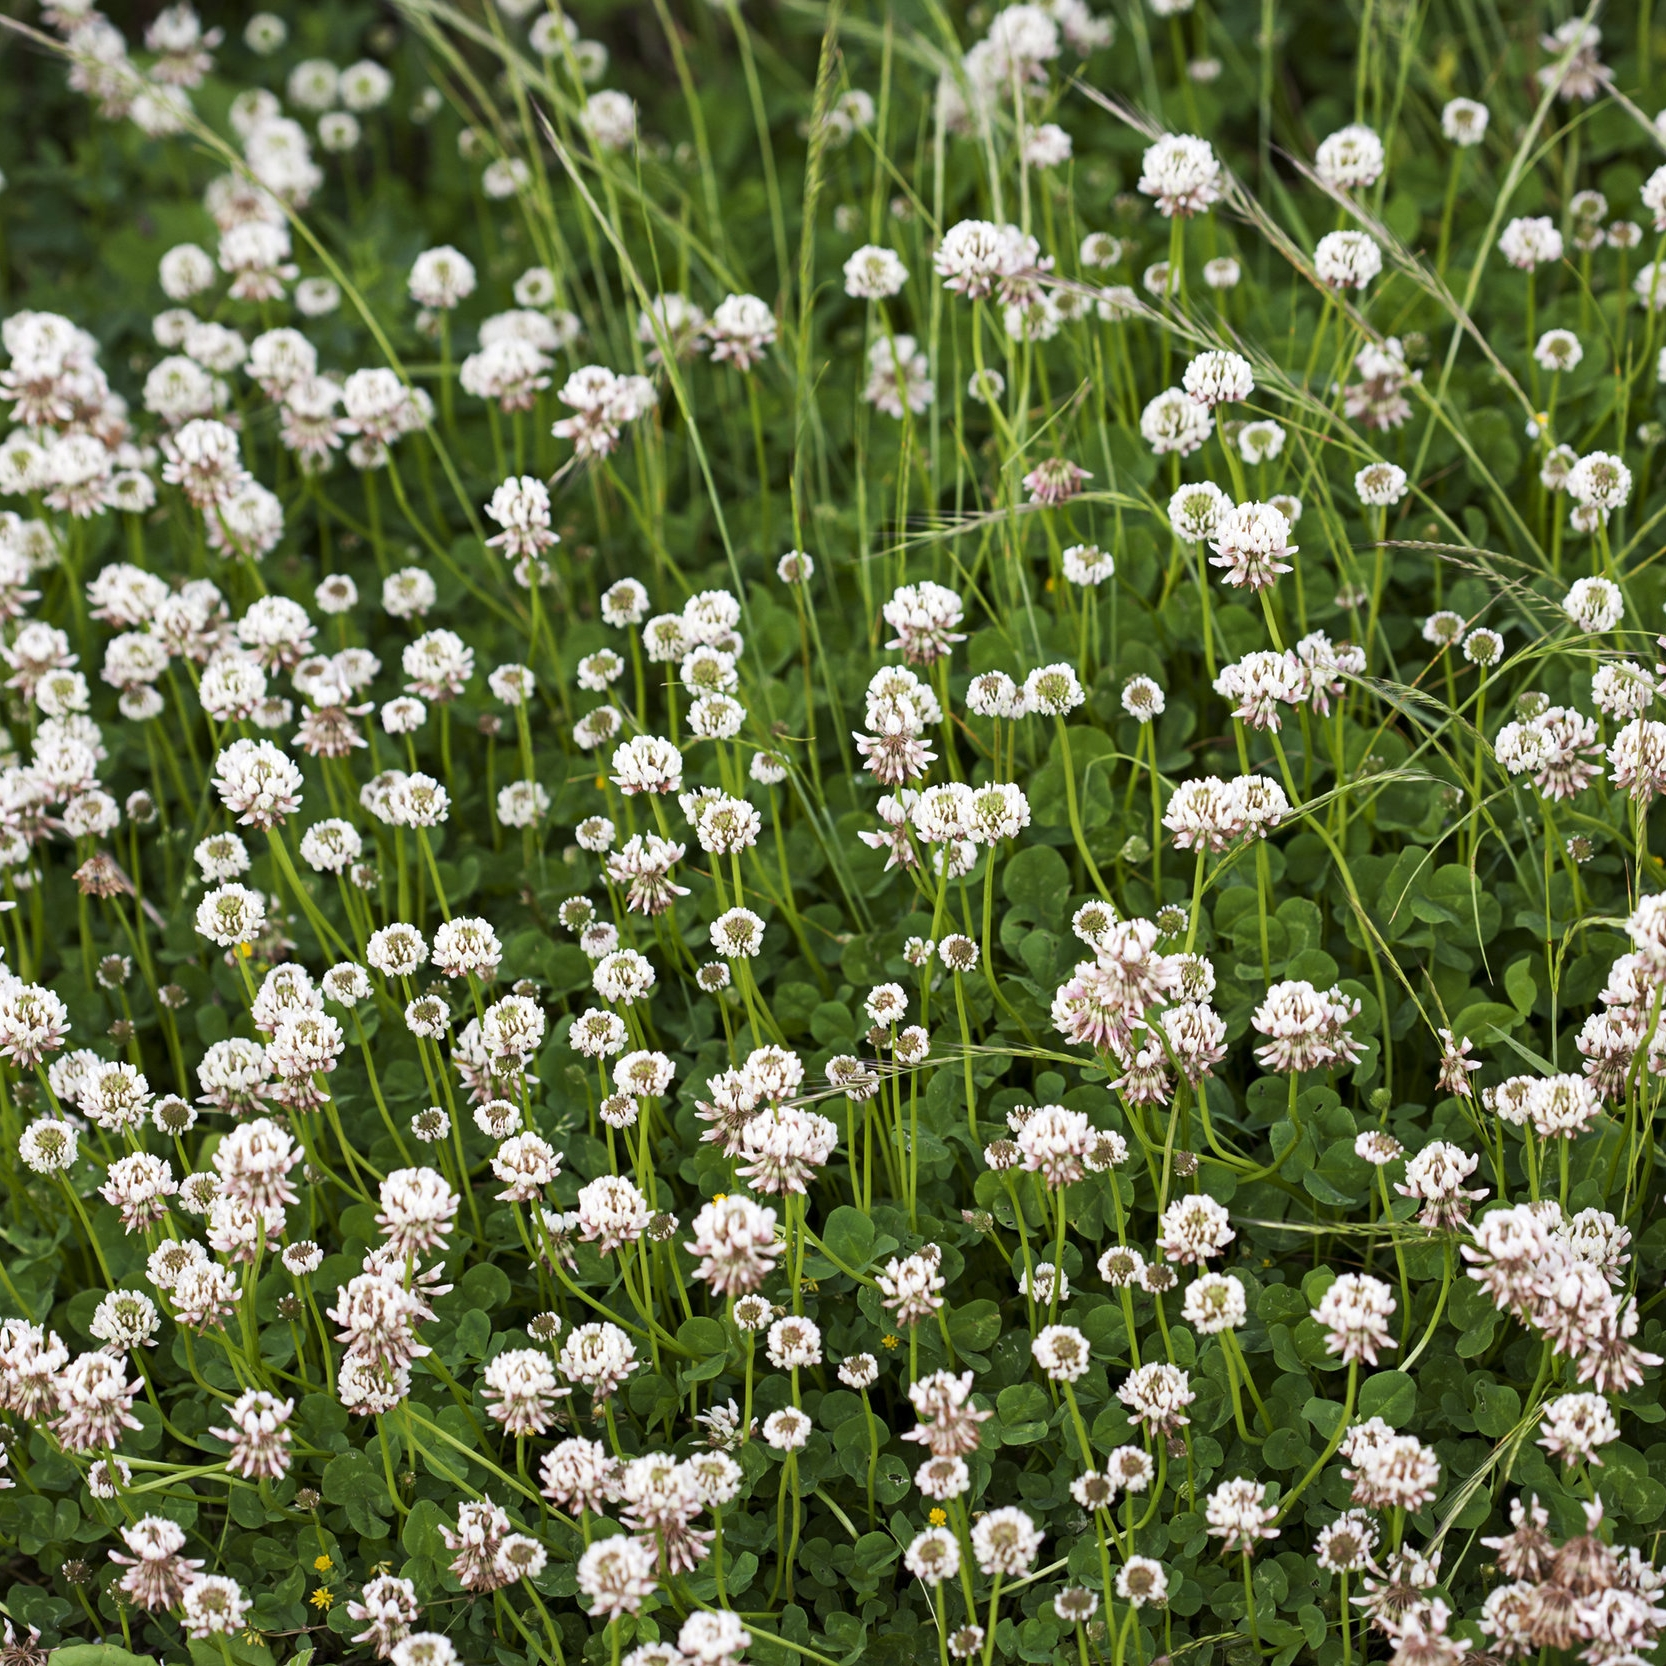 White Clover (Trifolium repens) - Annual or perennial: PerennialIndicates: Low fertility, low in nitrogen.Benefits: Clover is a nitrogen fixing plant (Nitrogen fixation:read about it here.).Edible: This one is edible, but should only be eaten fresh or dried. Taste ranking is low.Best way to get rid of it:Hand pulling, cultivation, application of mulch. Add more nitrogen and less phosphorous when fertilizing.